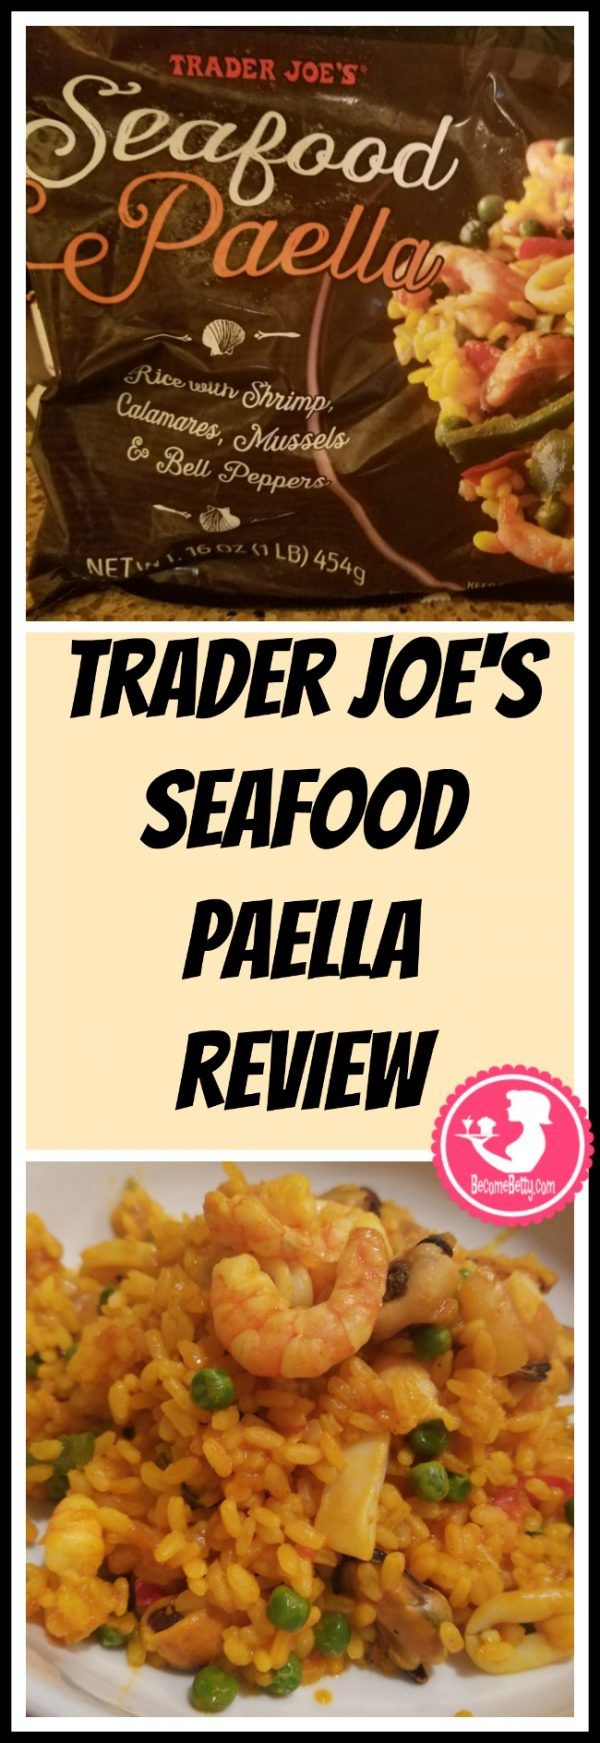 Trader Joe's Seafood Paella review. Want to know if this is something worth putting on your shopping list from Trader Joe's? All pins link to BecomeBetty.com where you can find reviews, pictures, thoughts, calorie counts, nutritional information, how to prepare, allergy information, price, and how to prepare each product.